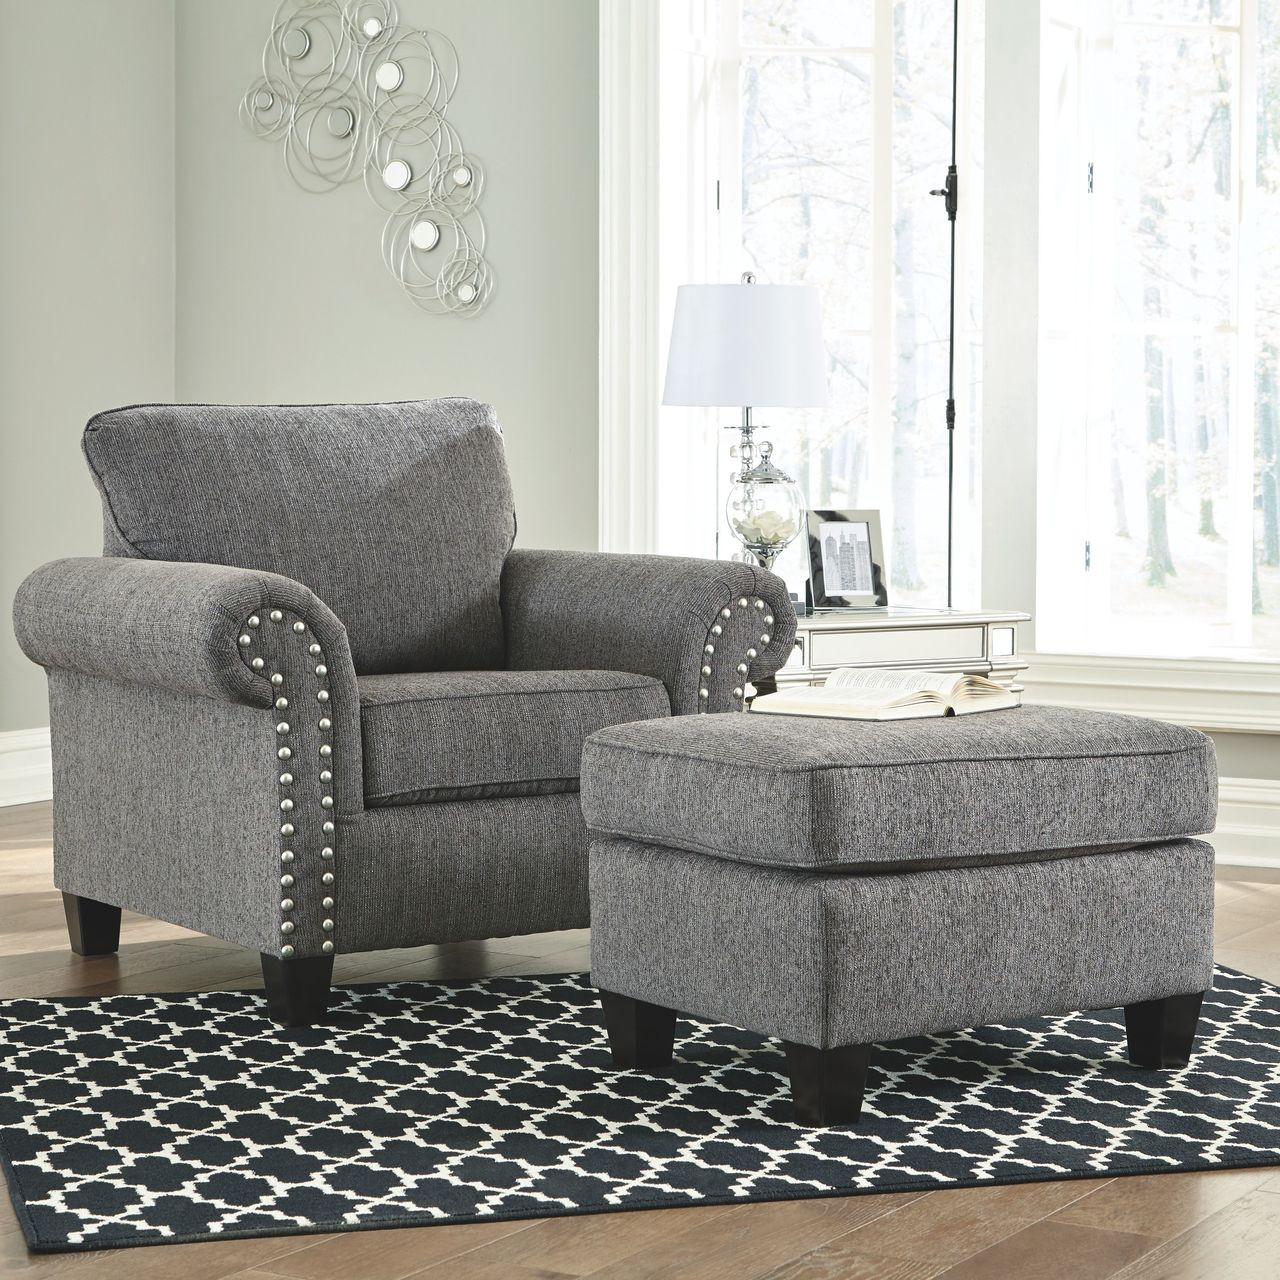 Chair Ottoman Agleno Charcoal Chair With Ottoman